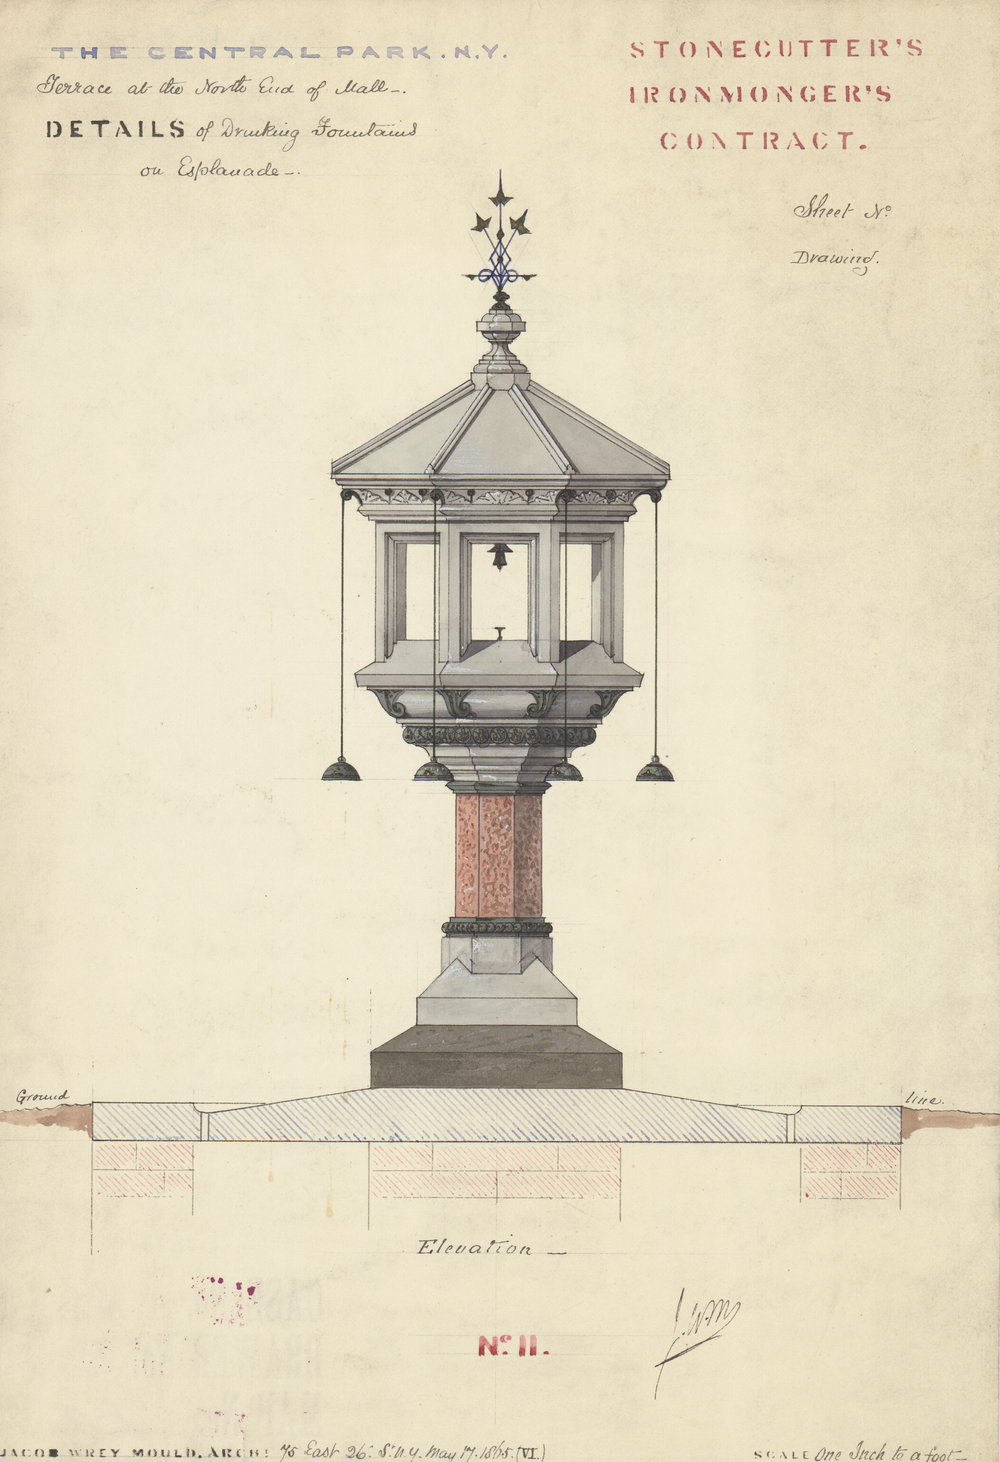 Drinking fountain on the Esplanade, elevation, stonecutter's and ironmonger's contract, 1865. Jacob Wrey Mould, architect.  Black and colored inks with colored washes on paper, 14 x 10 inches